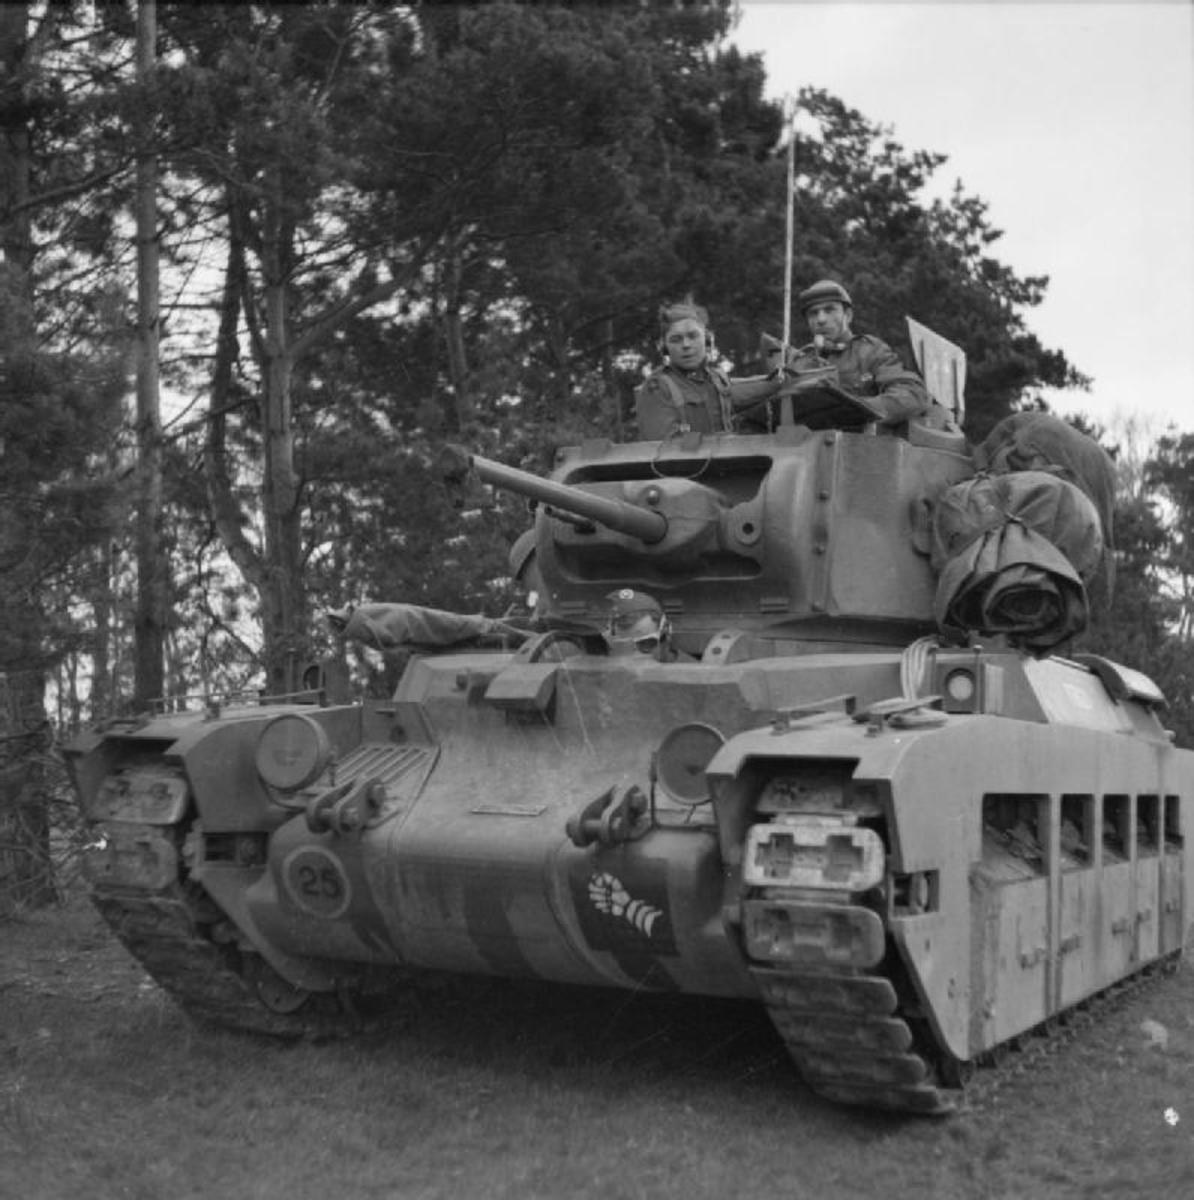 The British Matilda tank used in the Battle for France though heavily armored it was under gunned.